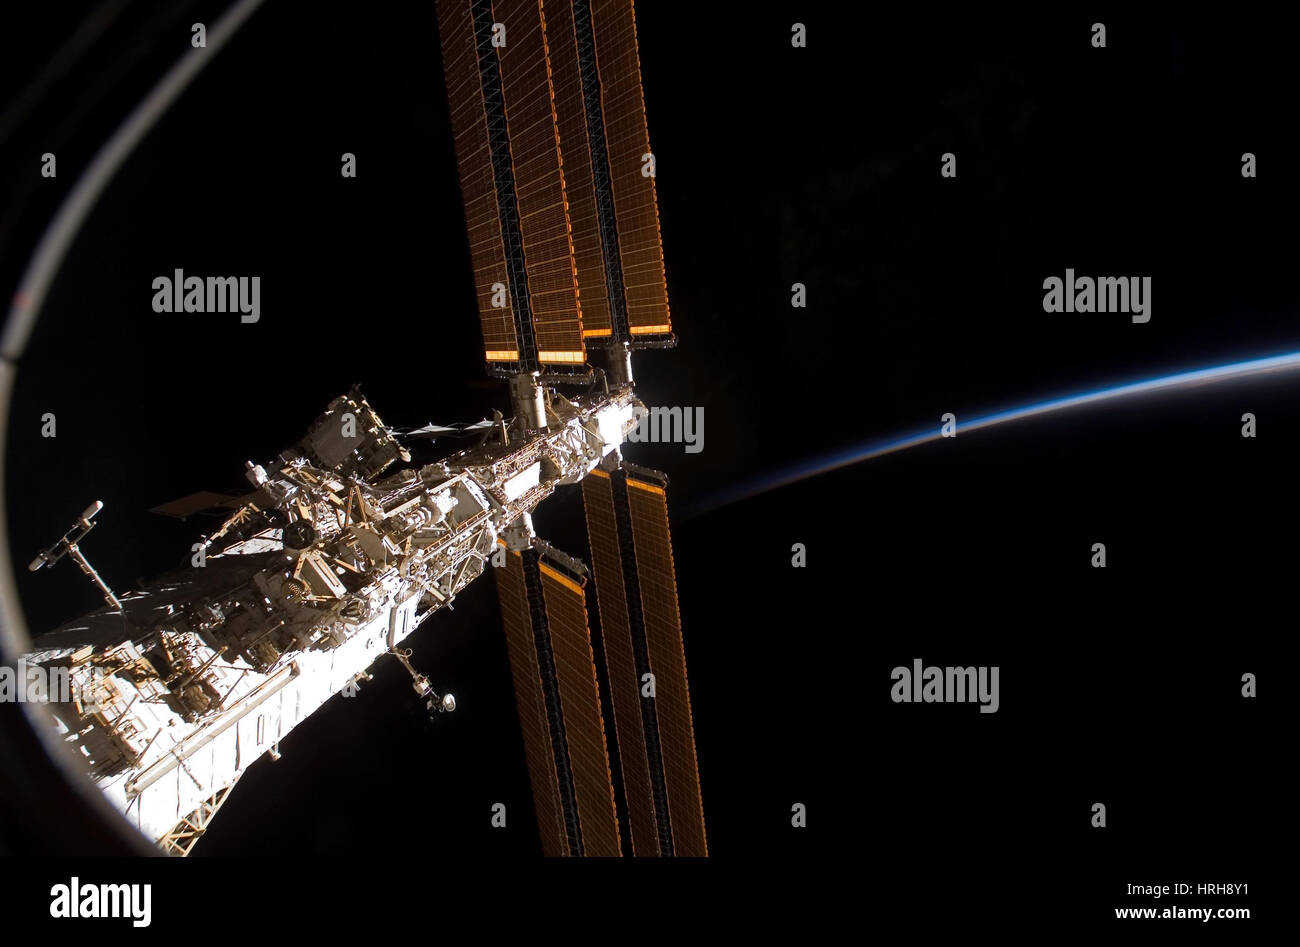 STS-122, International Space Station, 2008 - Stock Image